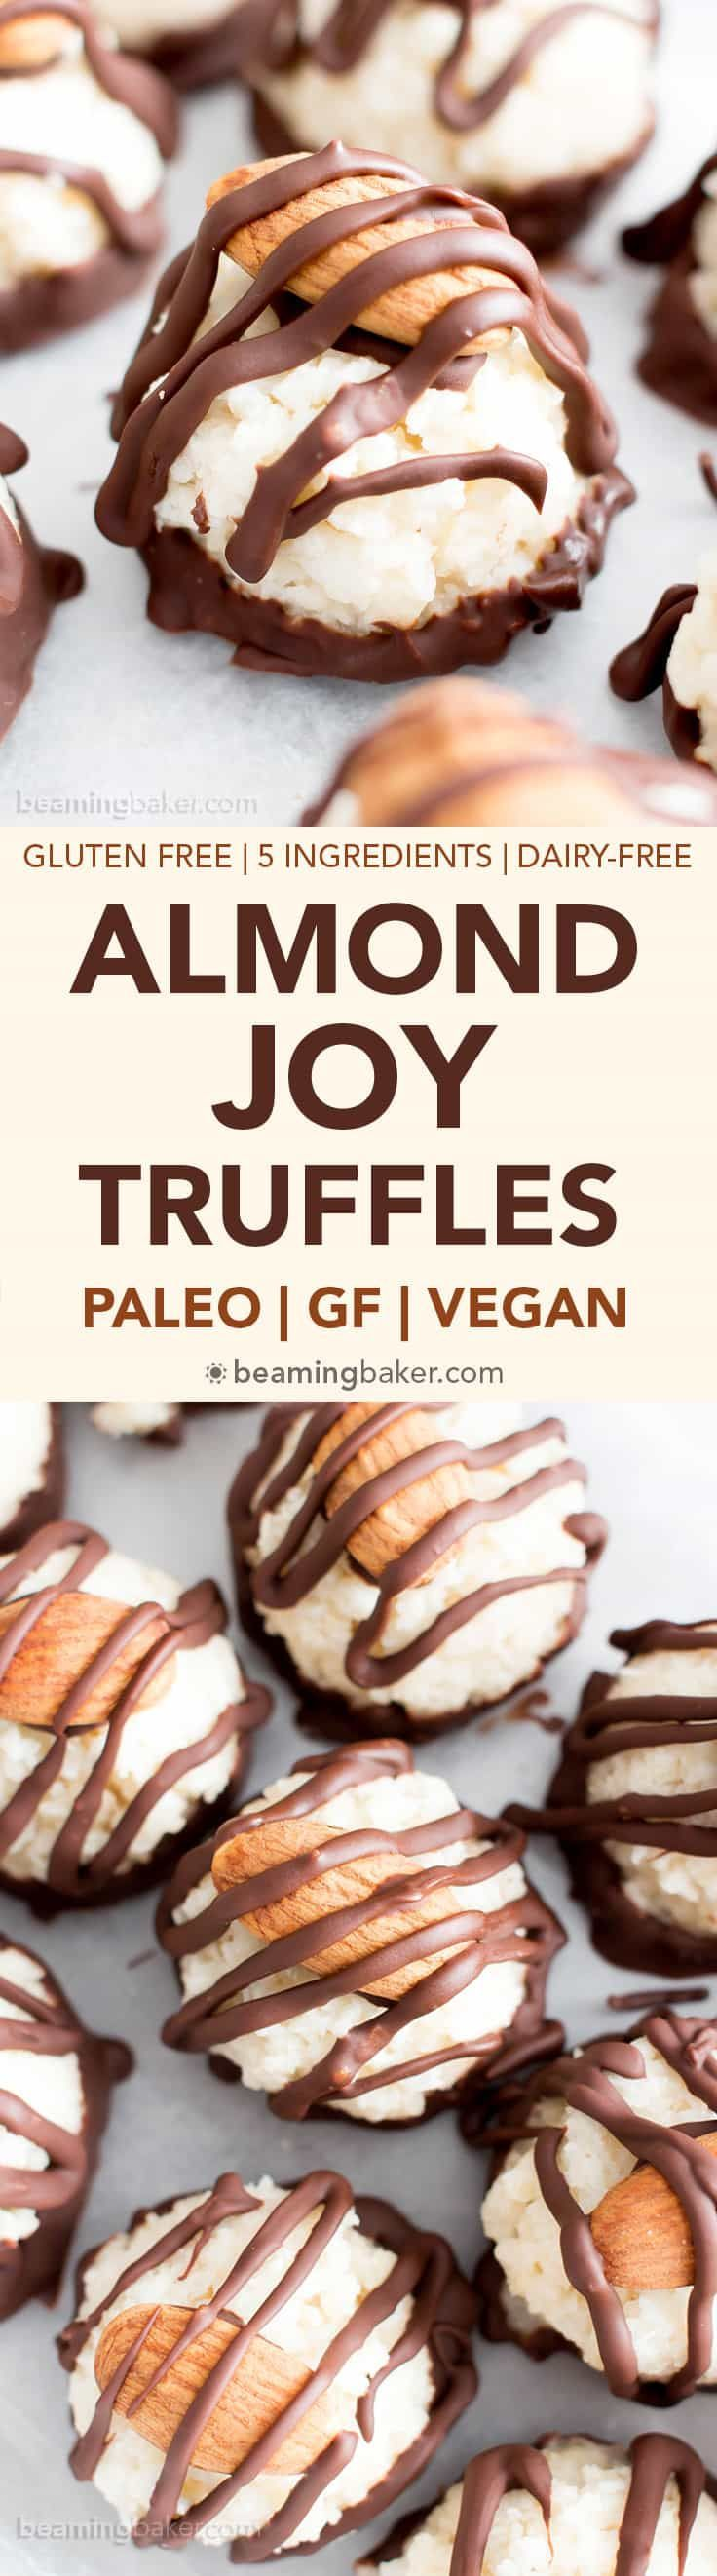 630 best Candy Fudge & Truffle Recipes images on Pinterest